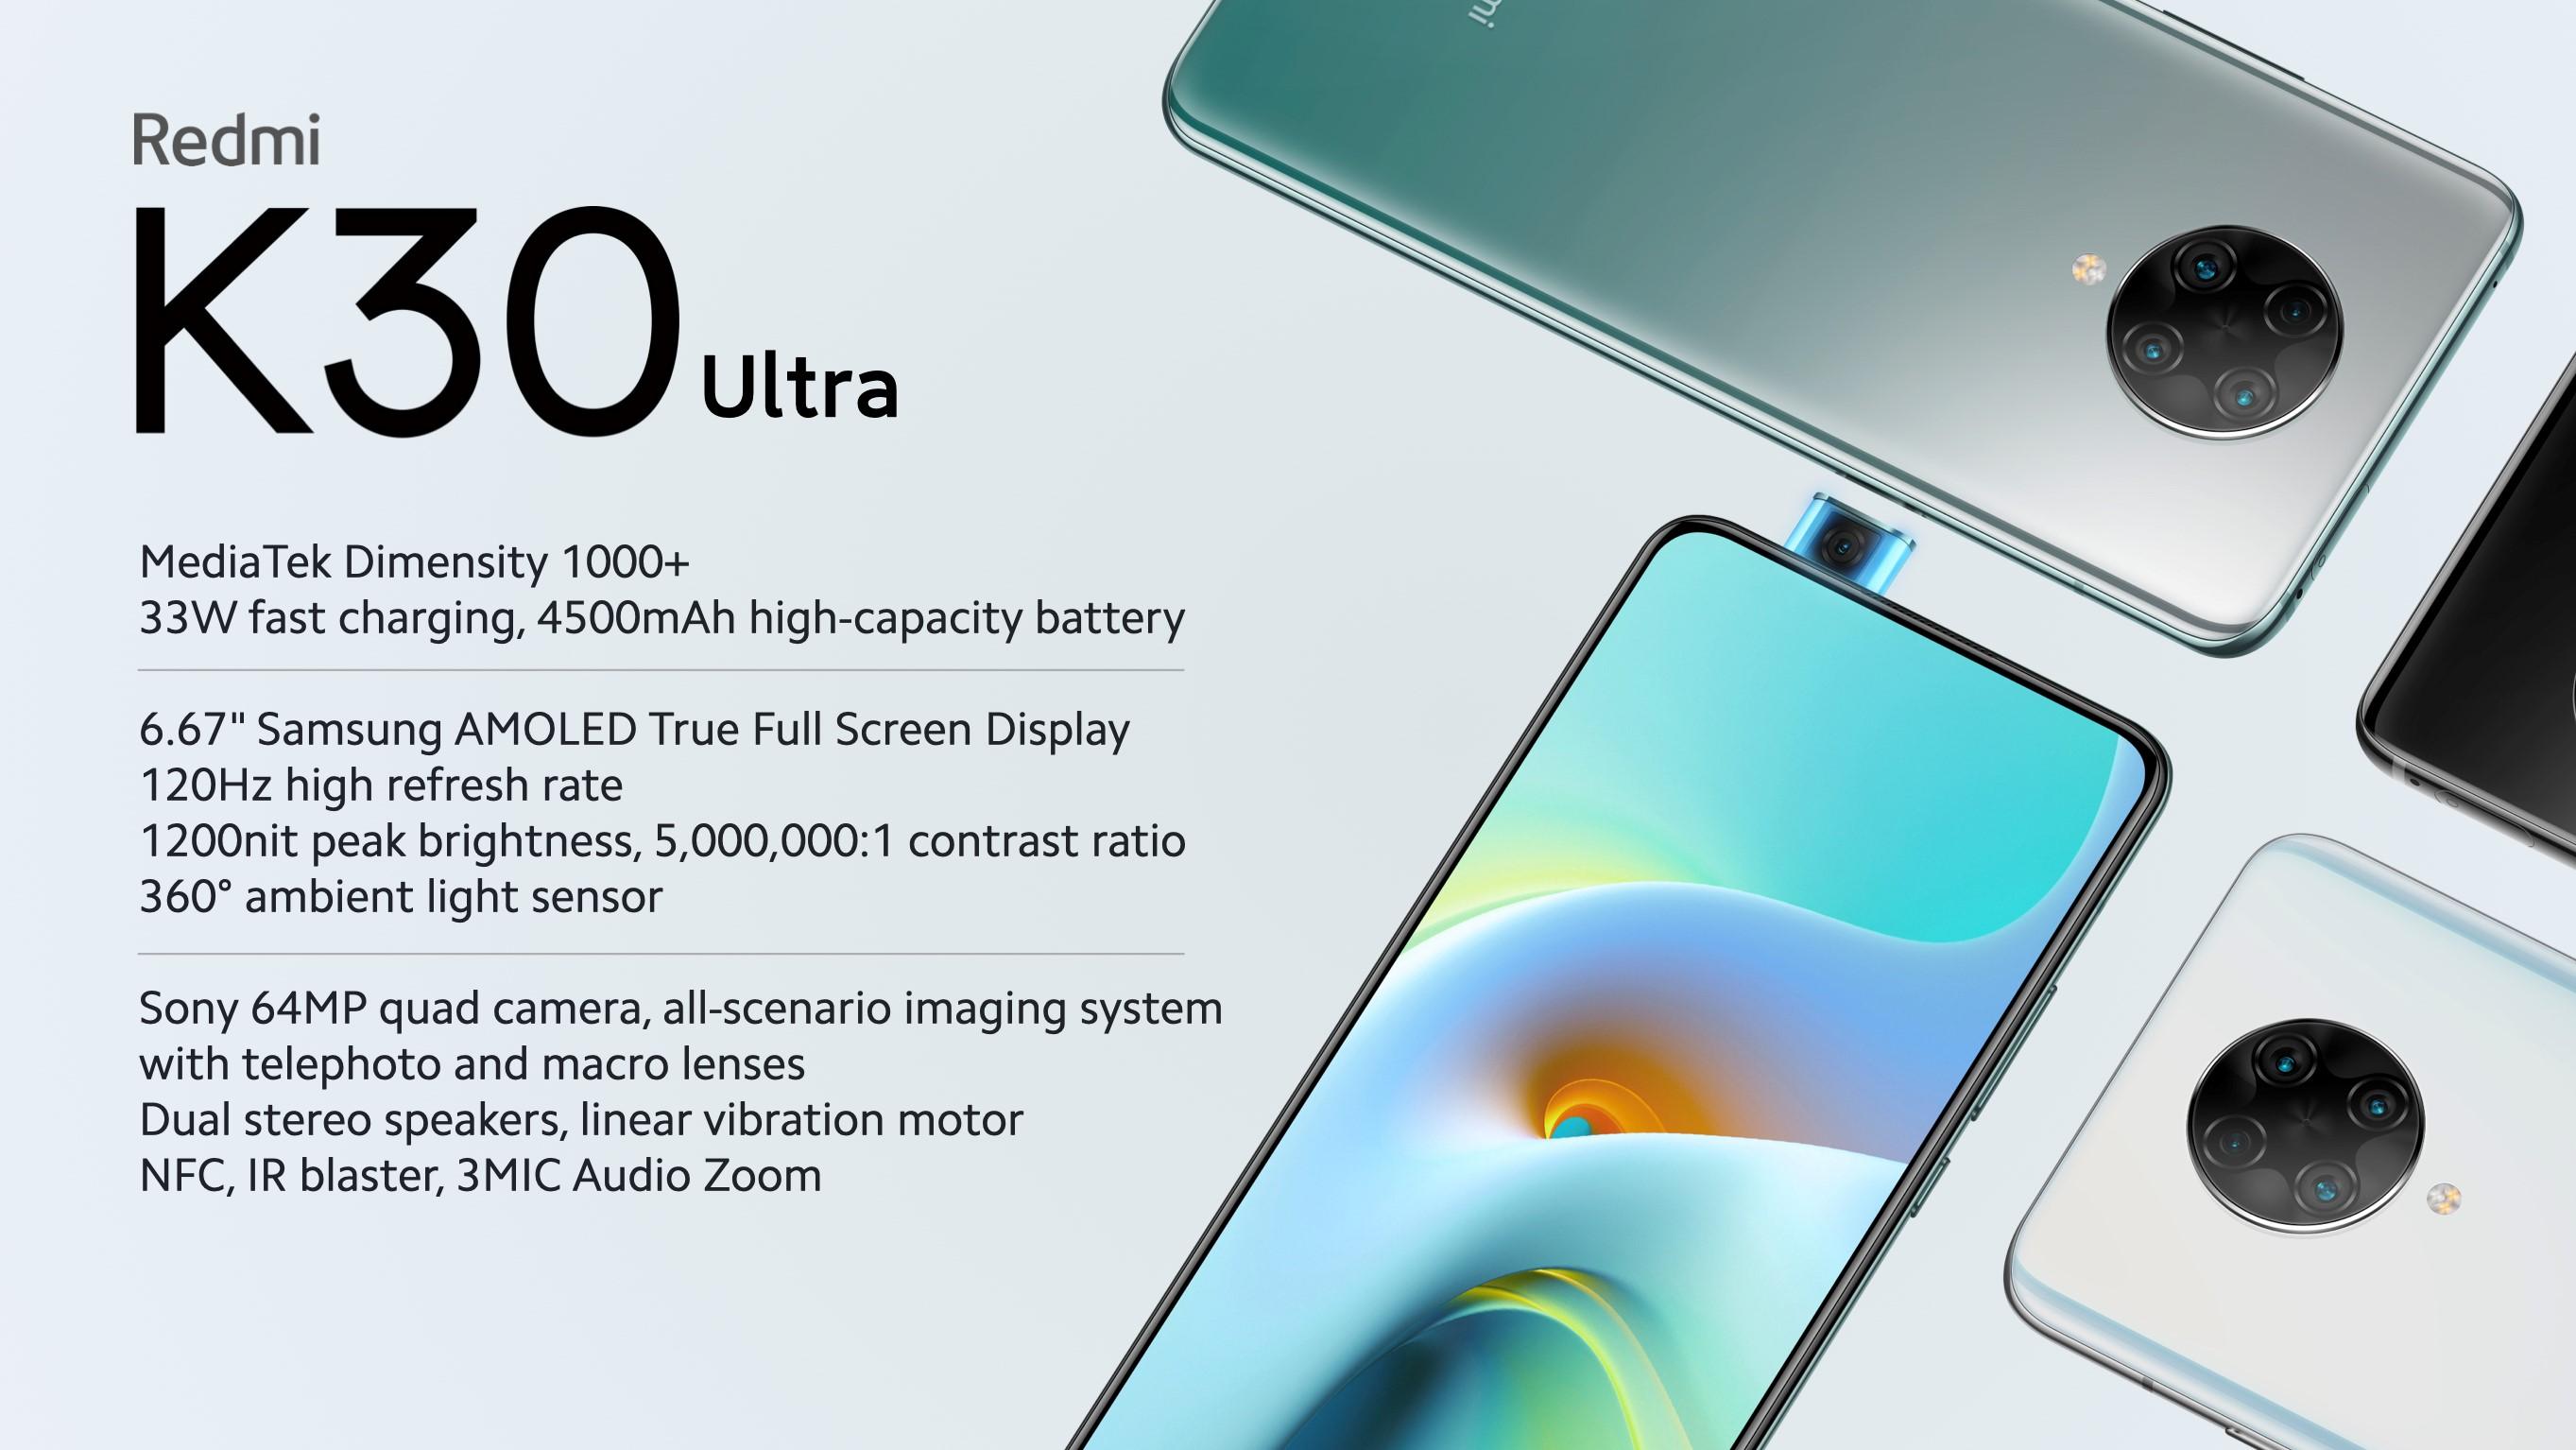 Xiaomi's affordable Redmi K30 Ultra flagship is now official